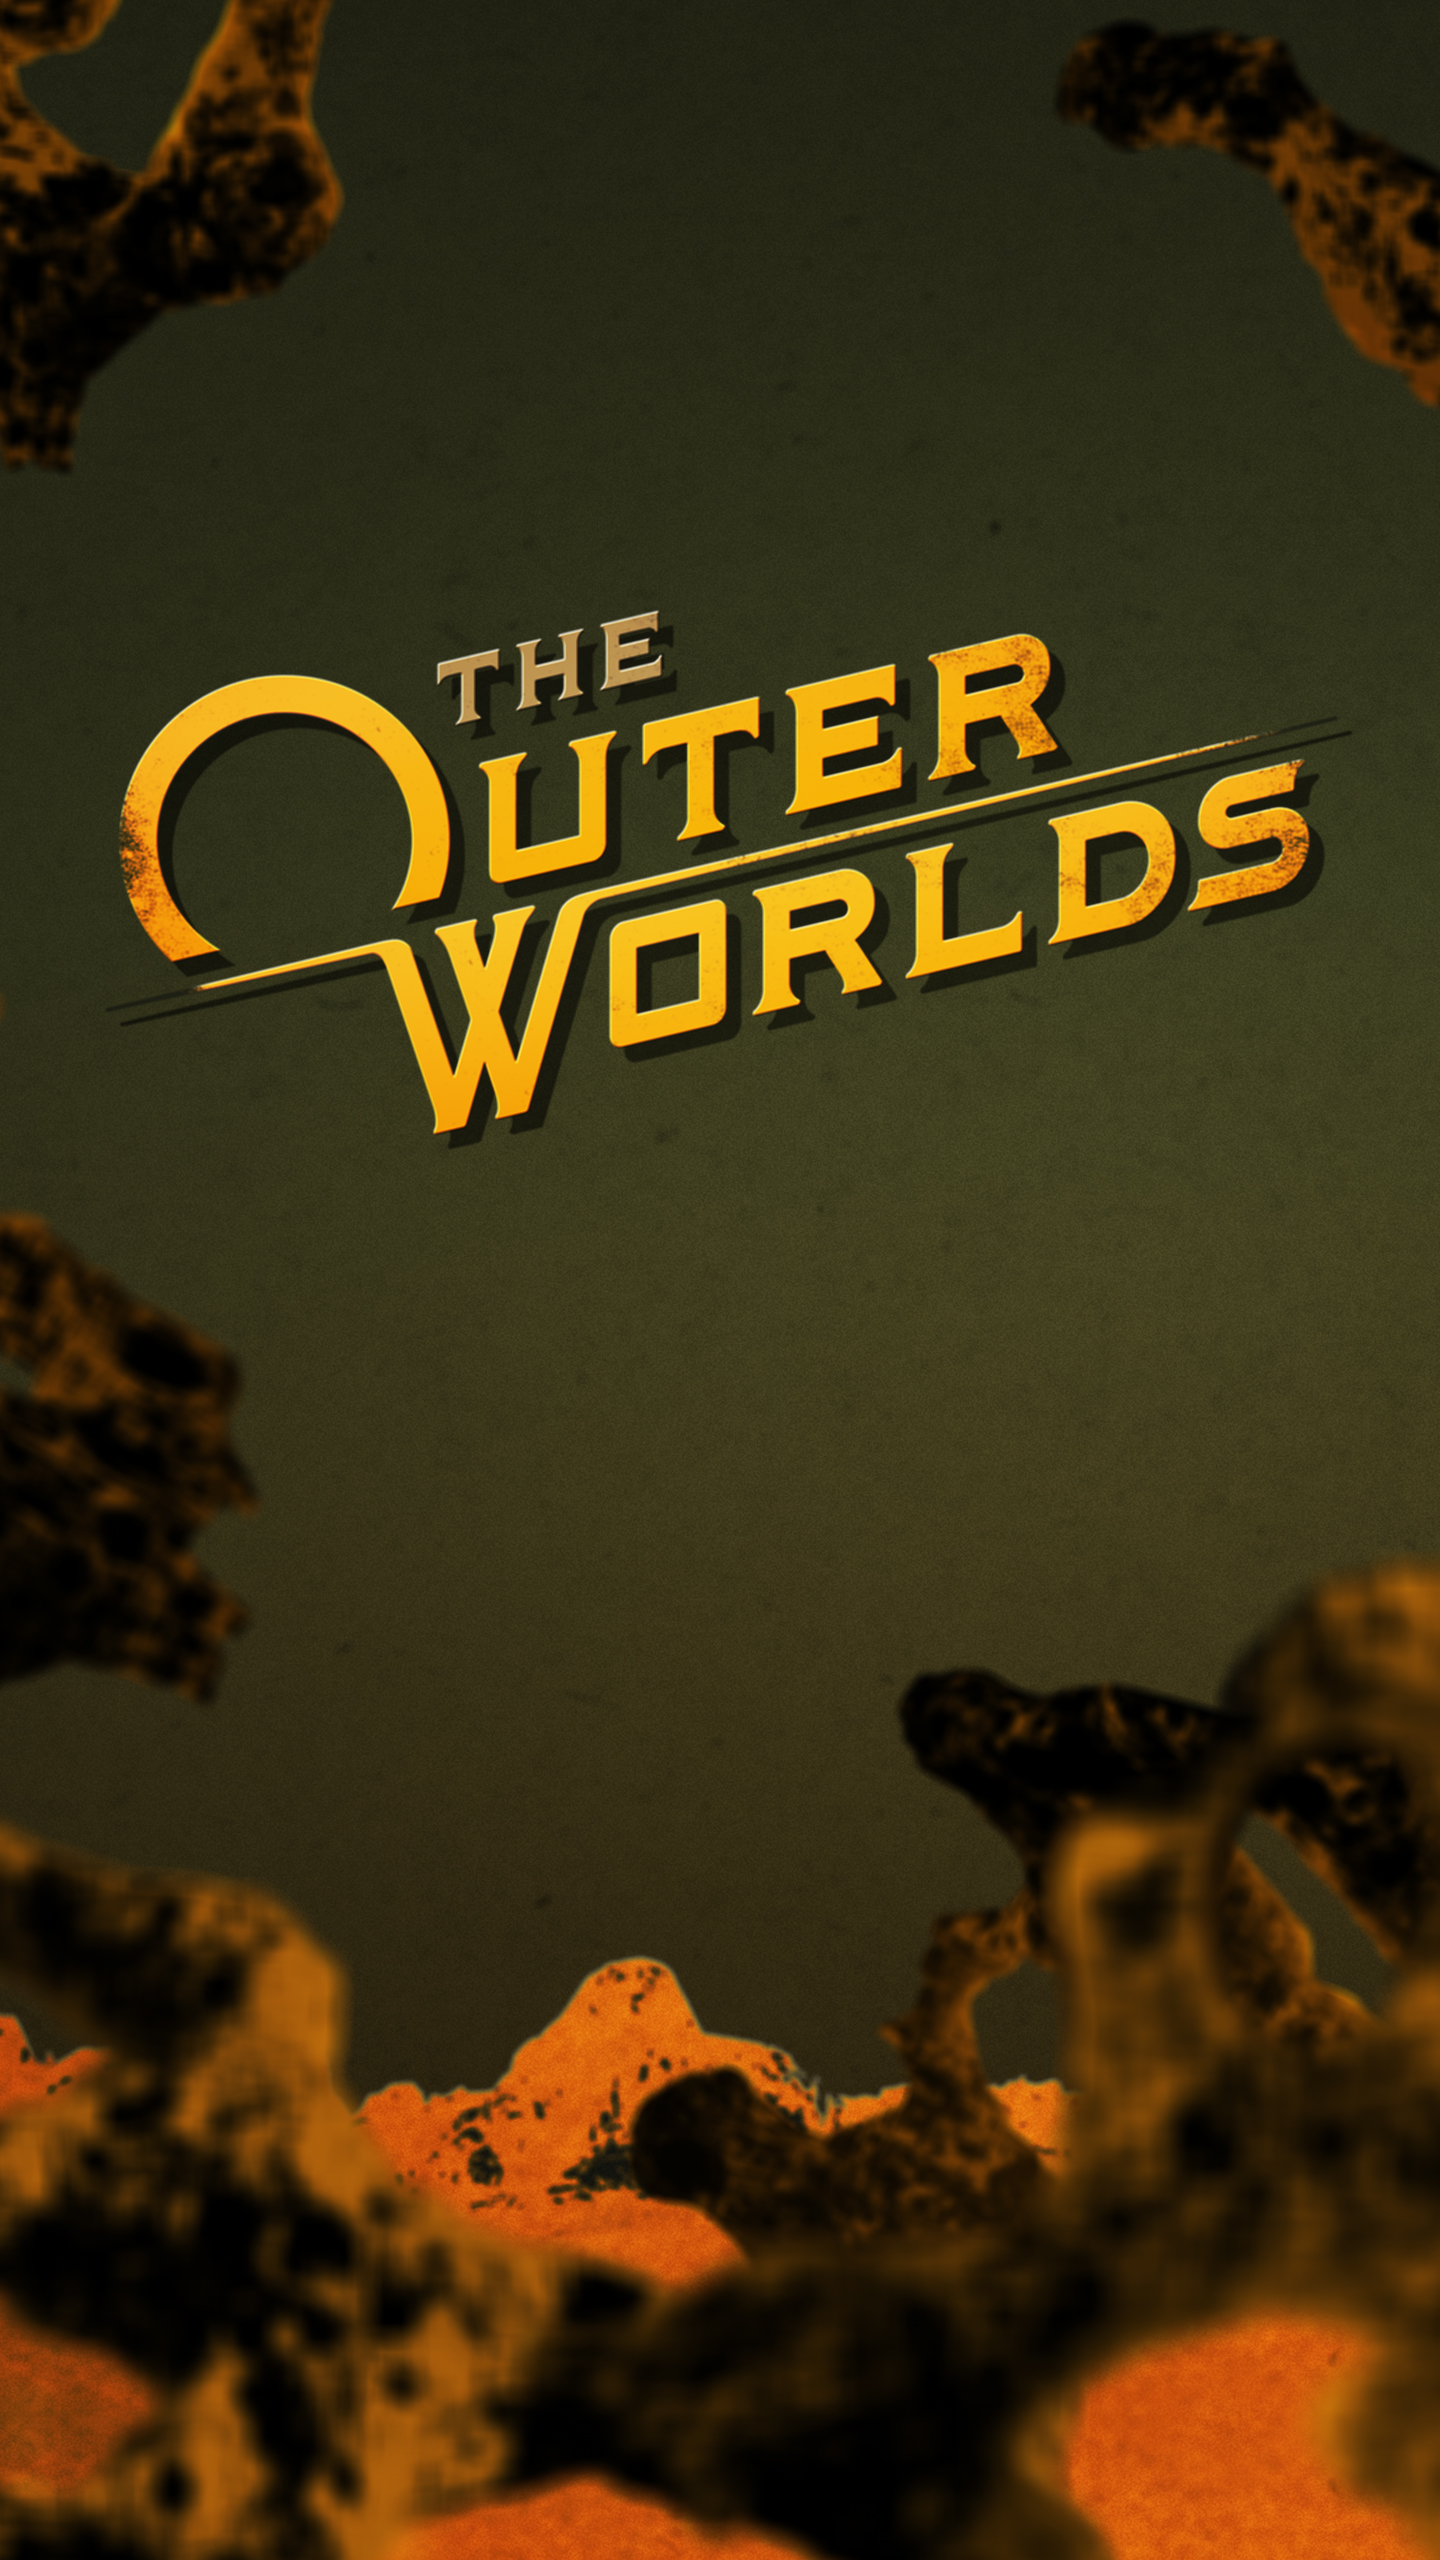 The Outer Worlds 2019 Promotional Art Mobygames